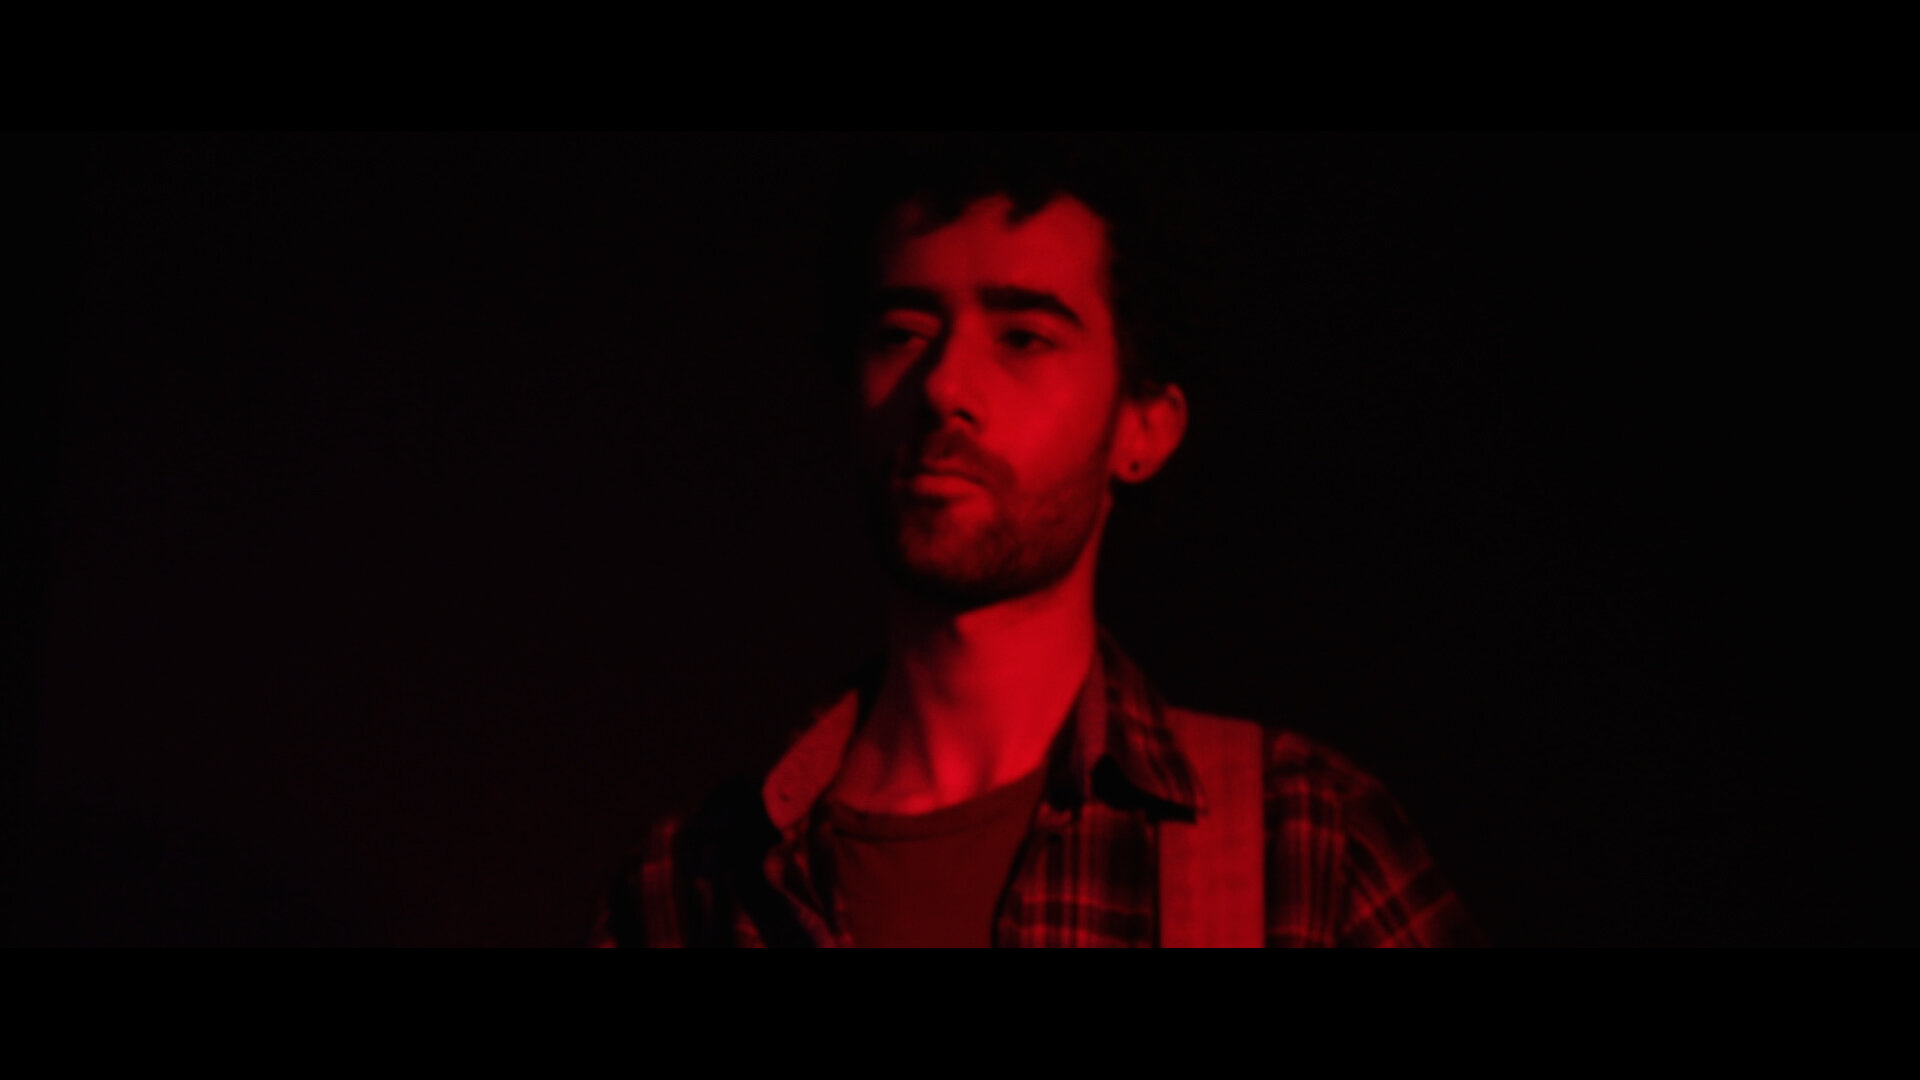 Yet-to-be-released music video.  Director. DP. Editor.